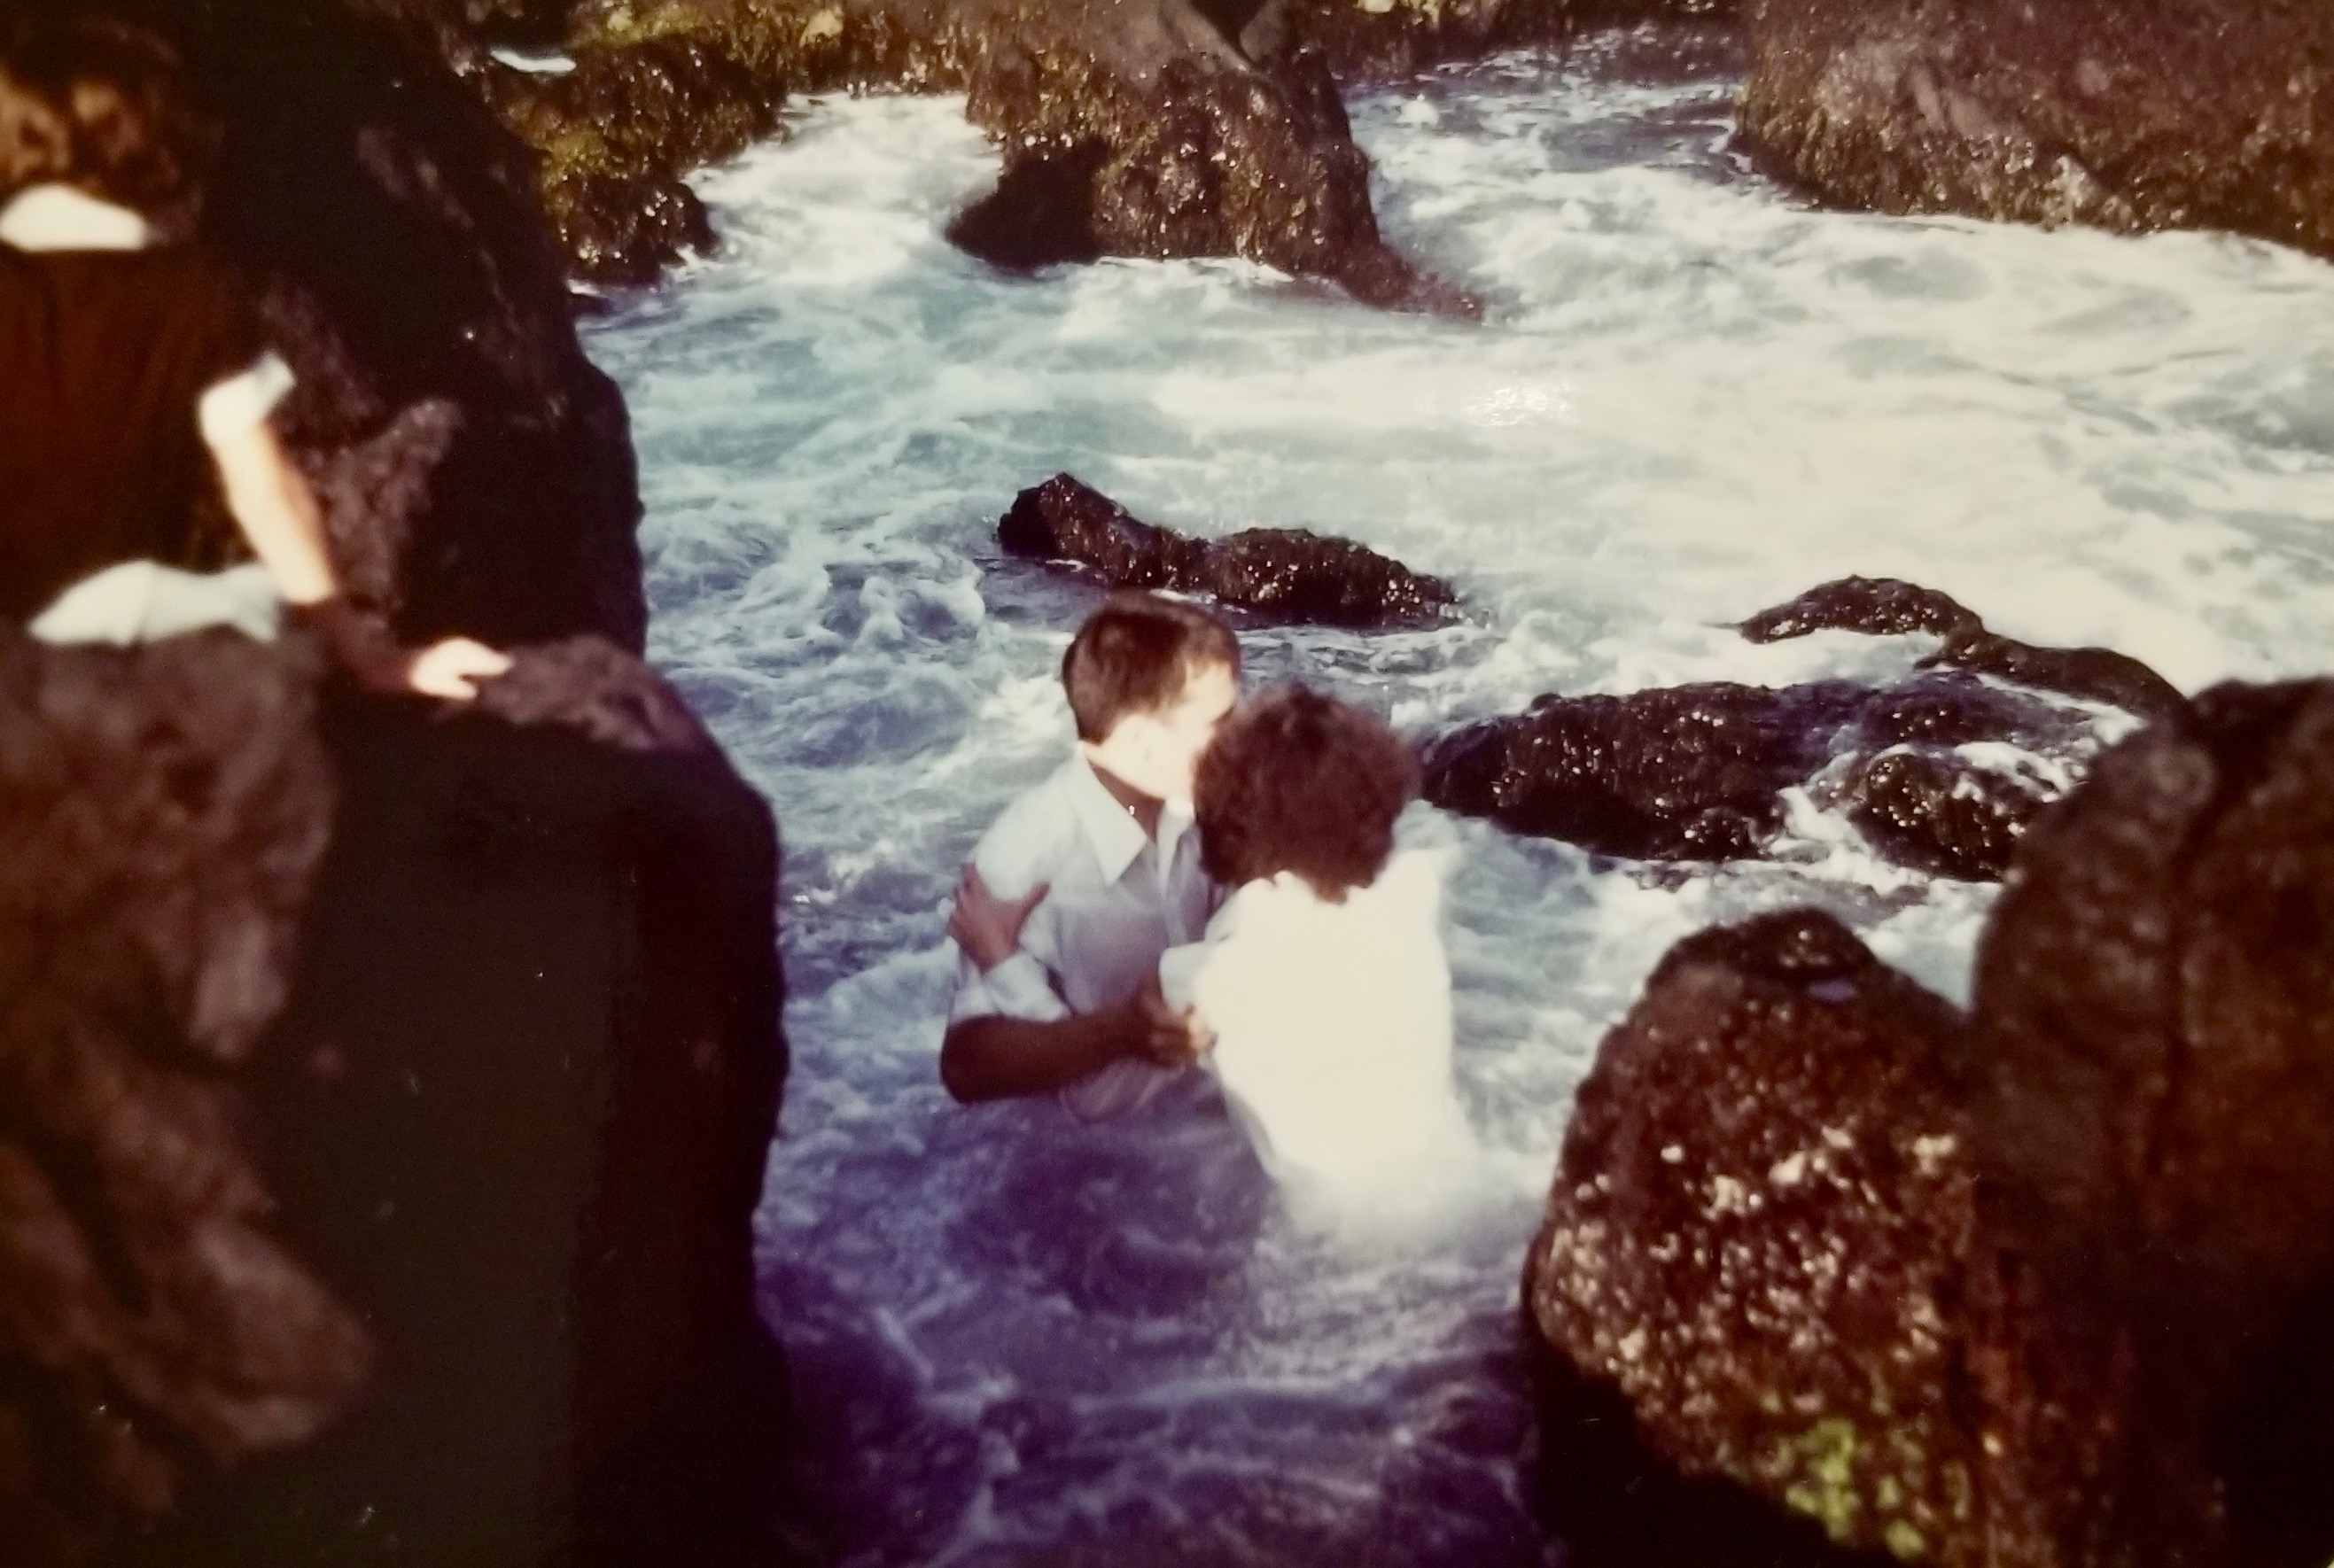 A photo showing the baptism of Alexandra Camacho Rodrigues, at age 18 on June 14, 1980, among the rocks and surf of the Azores' São Miguel Island.